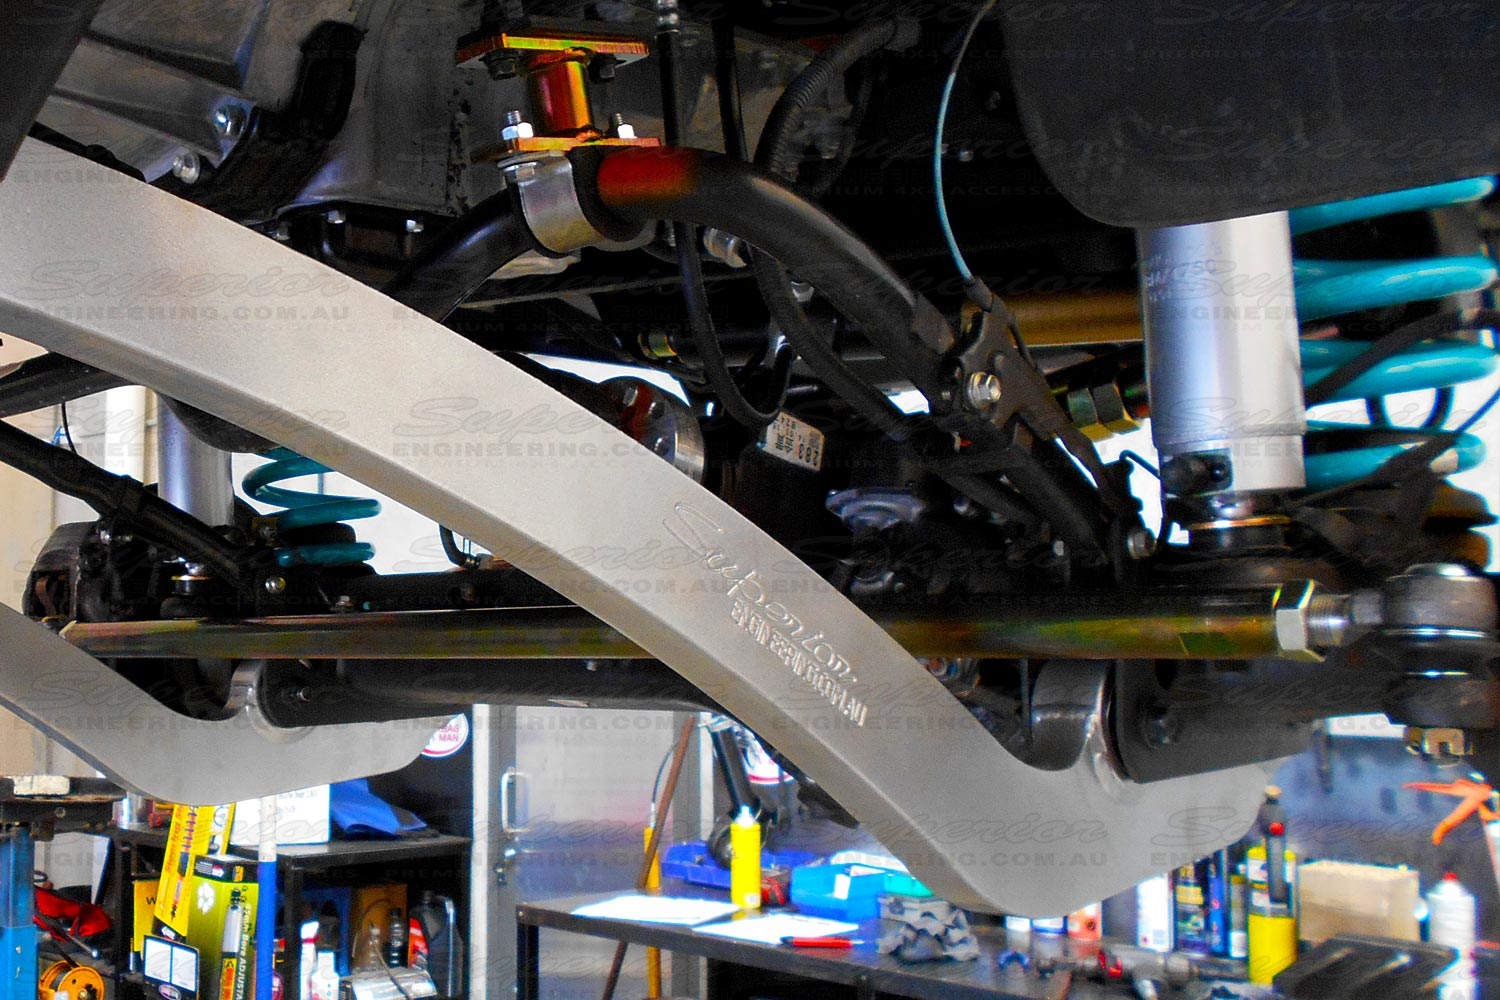 A heavy duty Superior Engineering tie rod steering arm fitted on a 4x4 vehicle